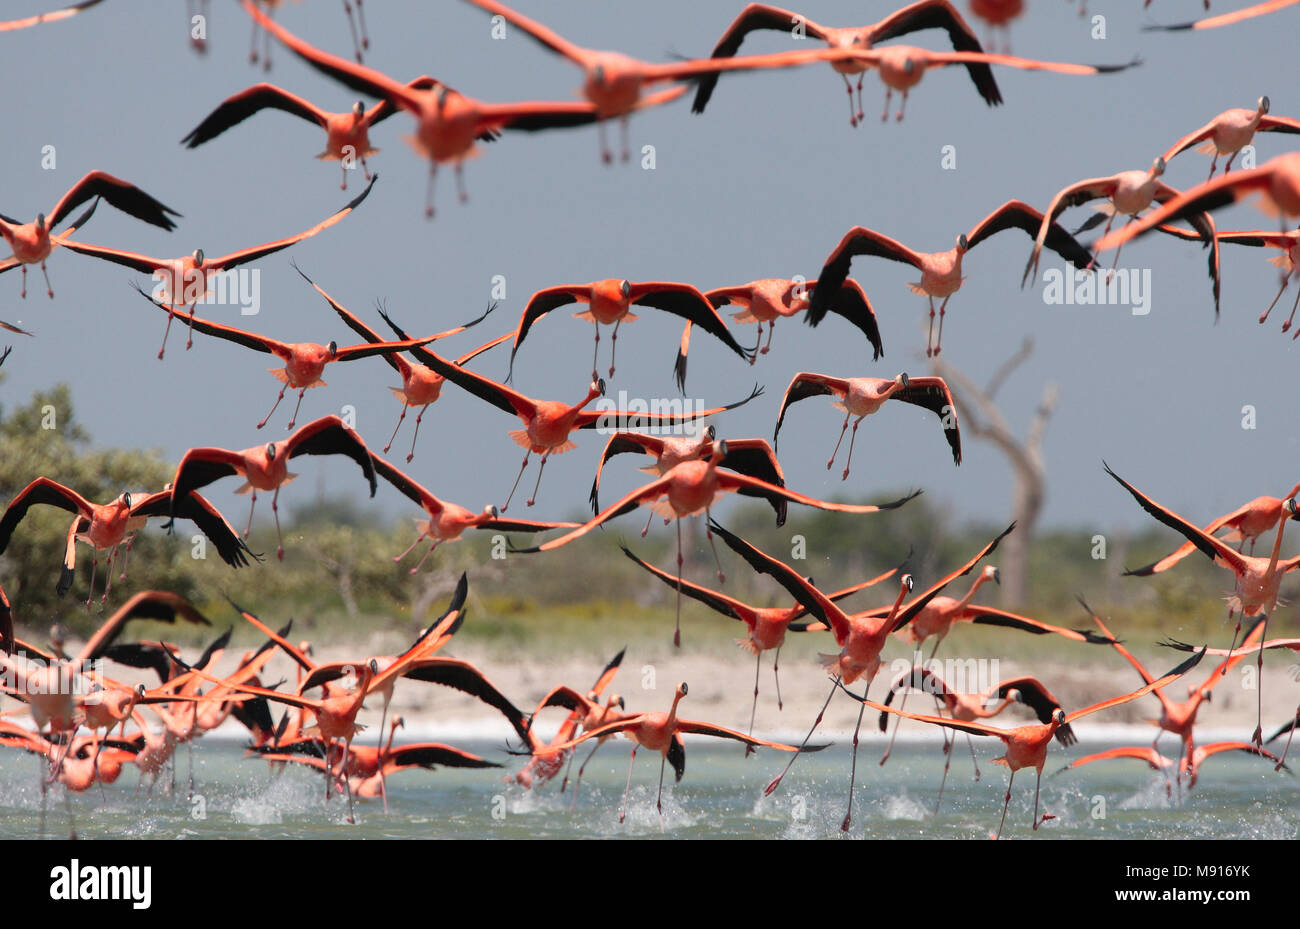 Rode Flamingo een groep in vlucht Mexico, American Flamingo a flock in flight Mexico Stock Photo